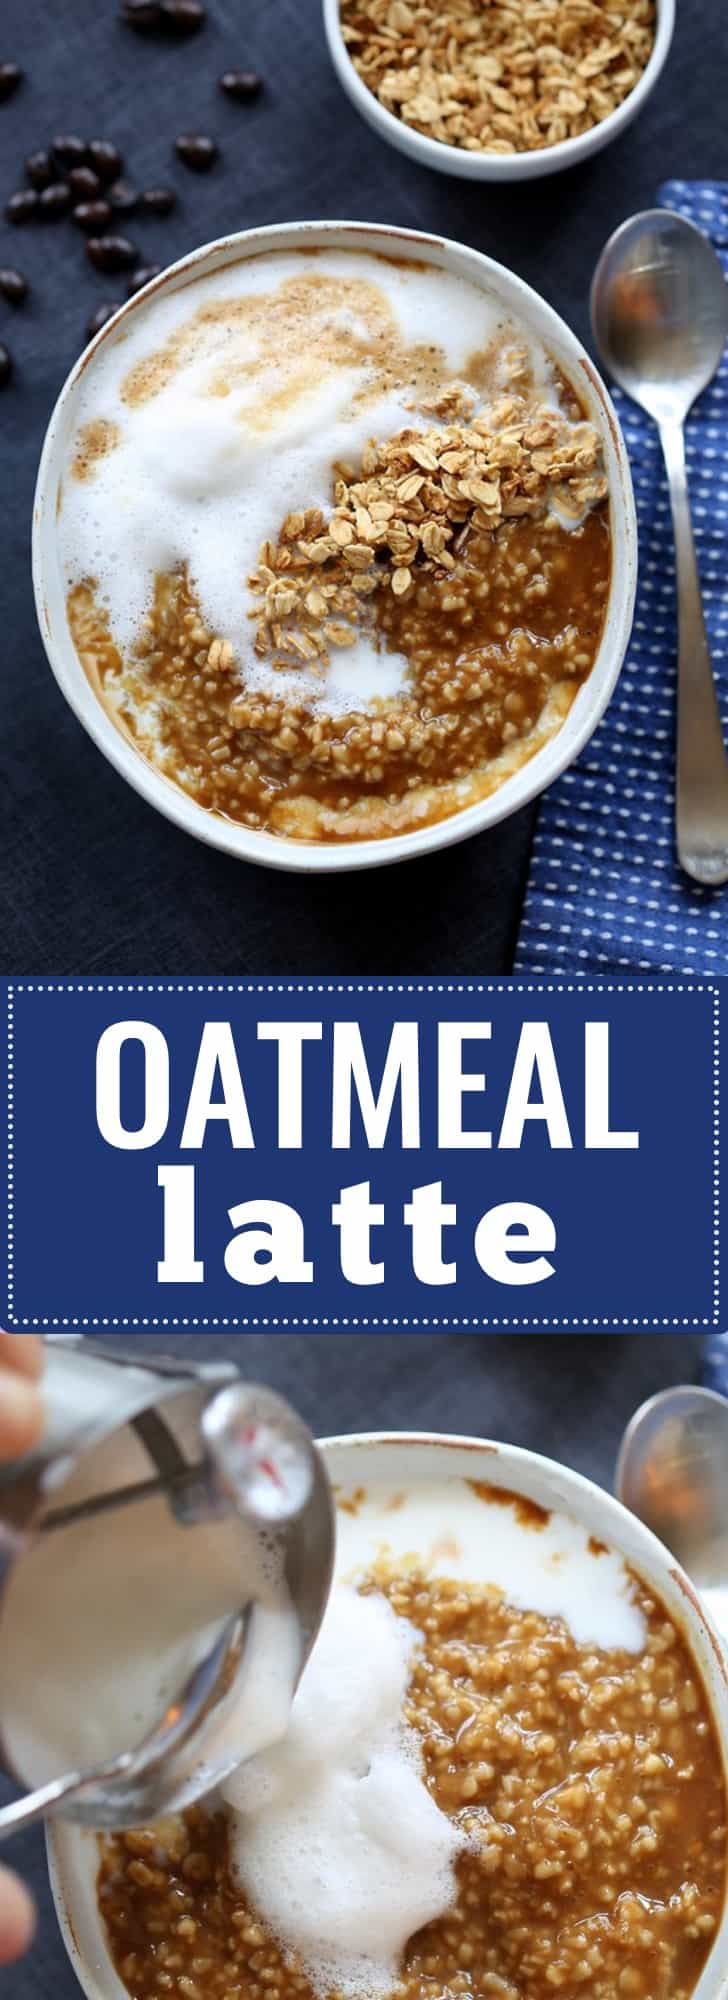 Oatmeal Latte- warm steel cut oats, frothy milk, hot coffee and brown sugar- delicious!